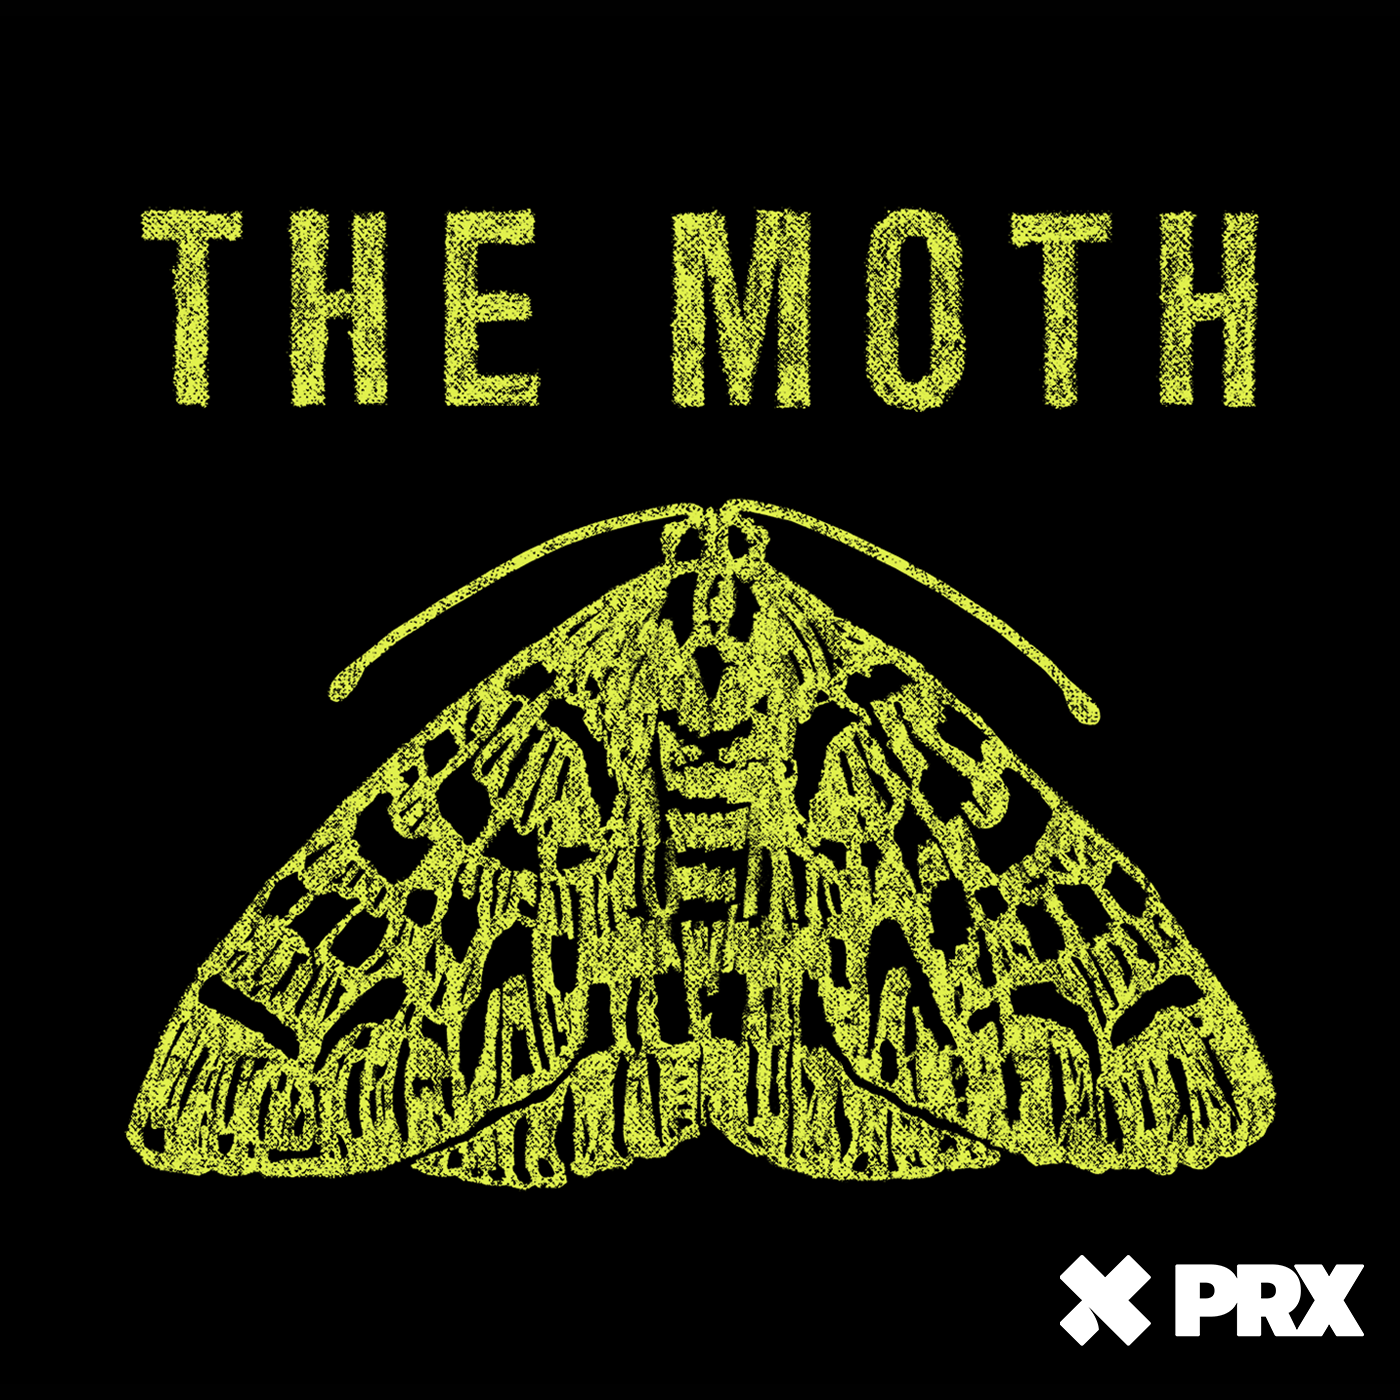 The Moth Radio Hour: Camp, Cars, Cockroaches, and the Kremlin